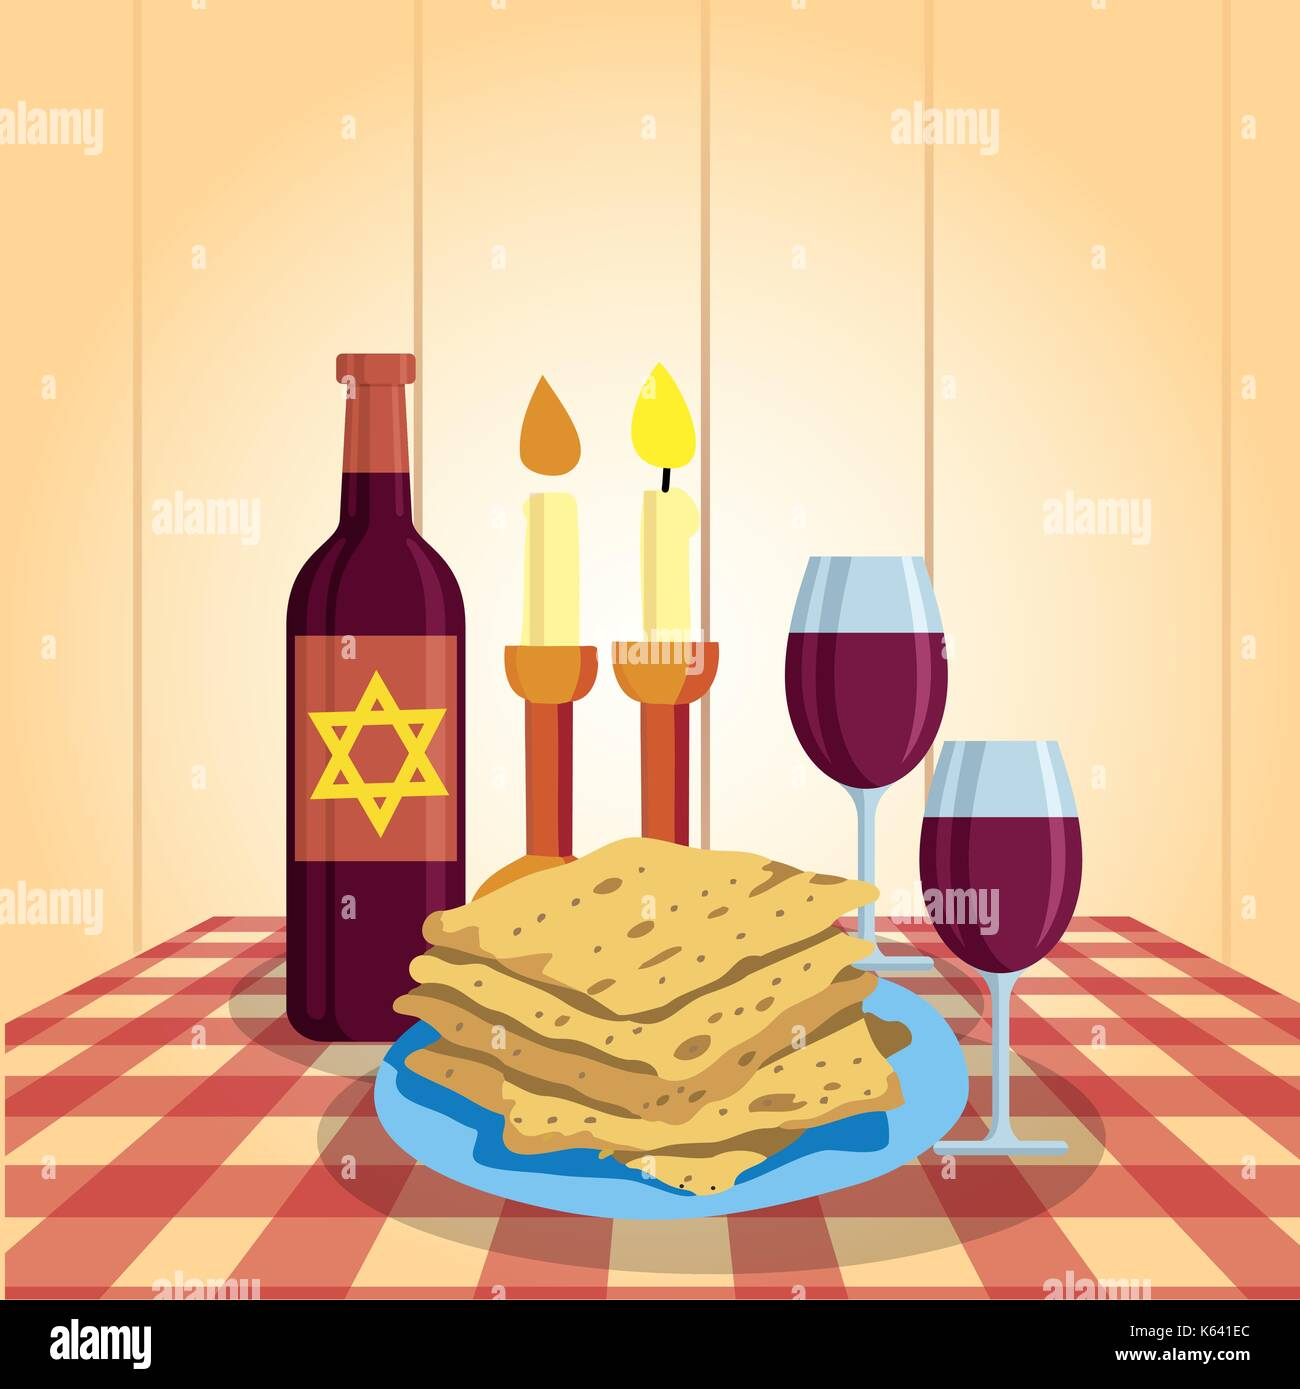 Shabbat shalom. Candles, kiddush cup and matzo. Religious traditions. - Stock Vector